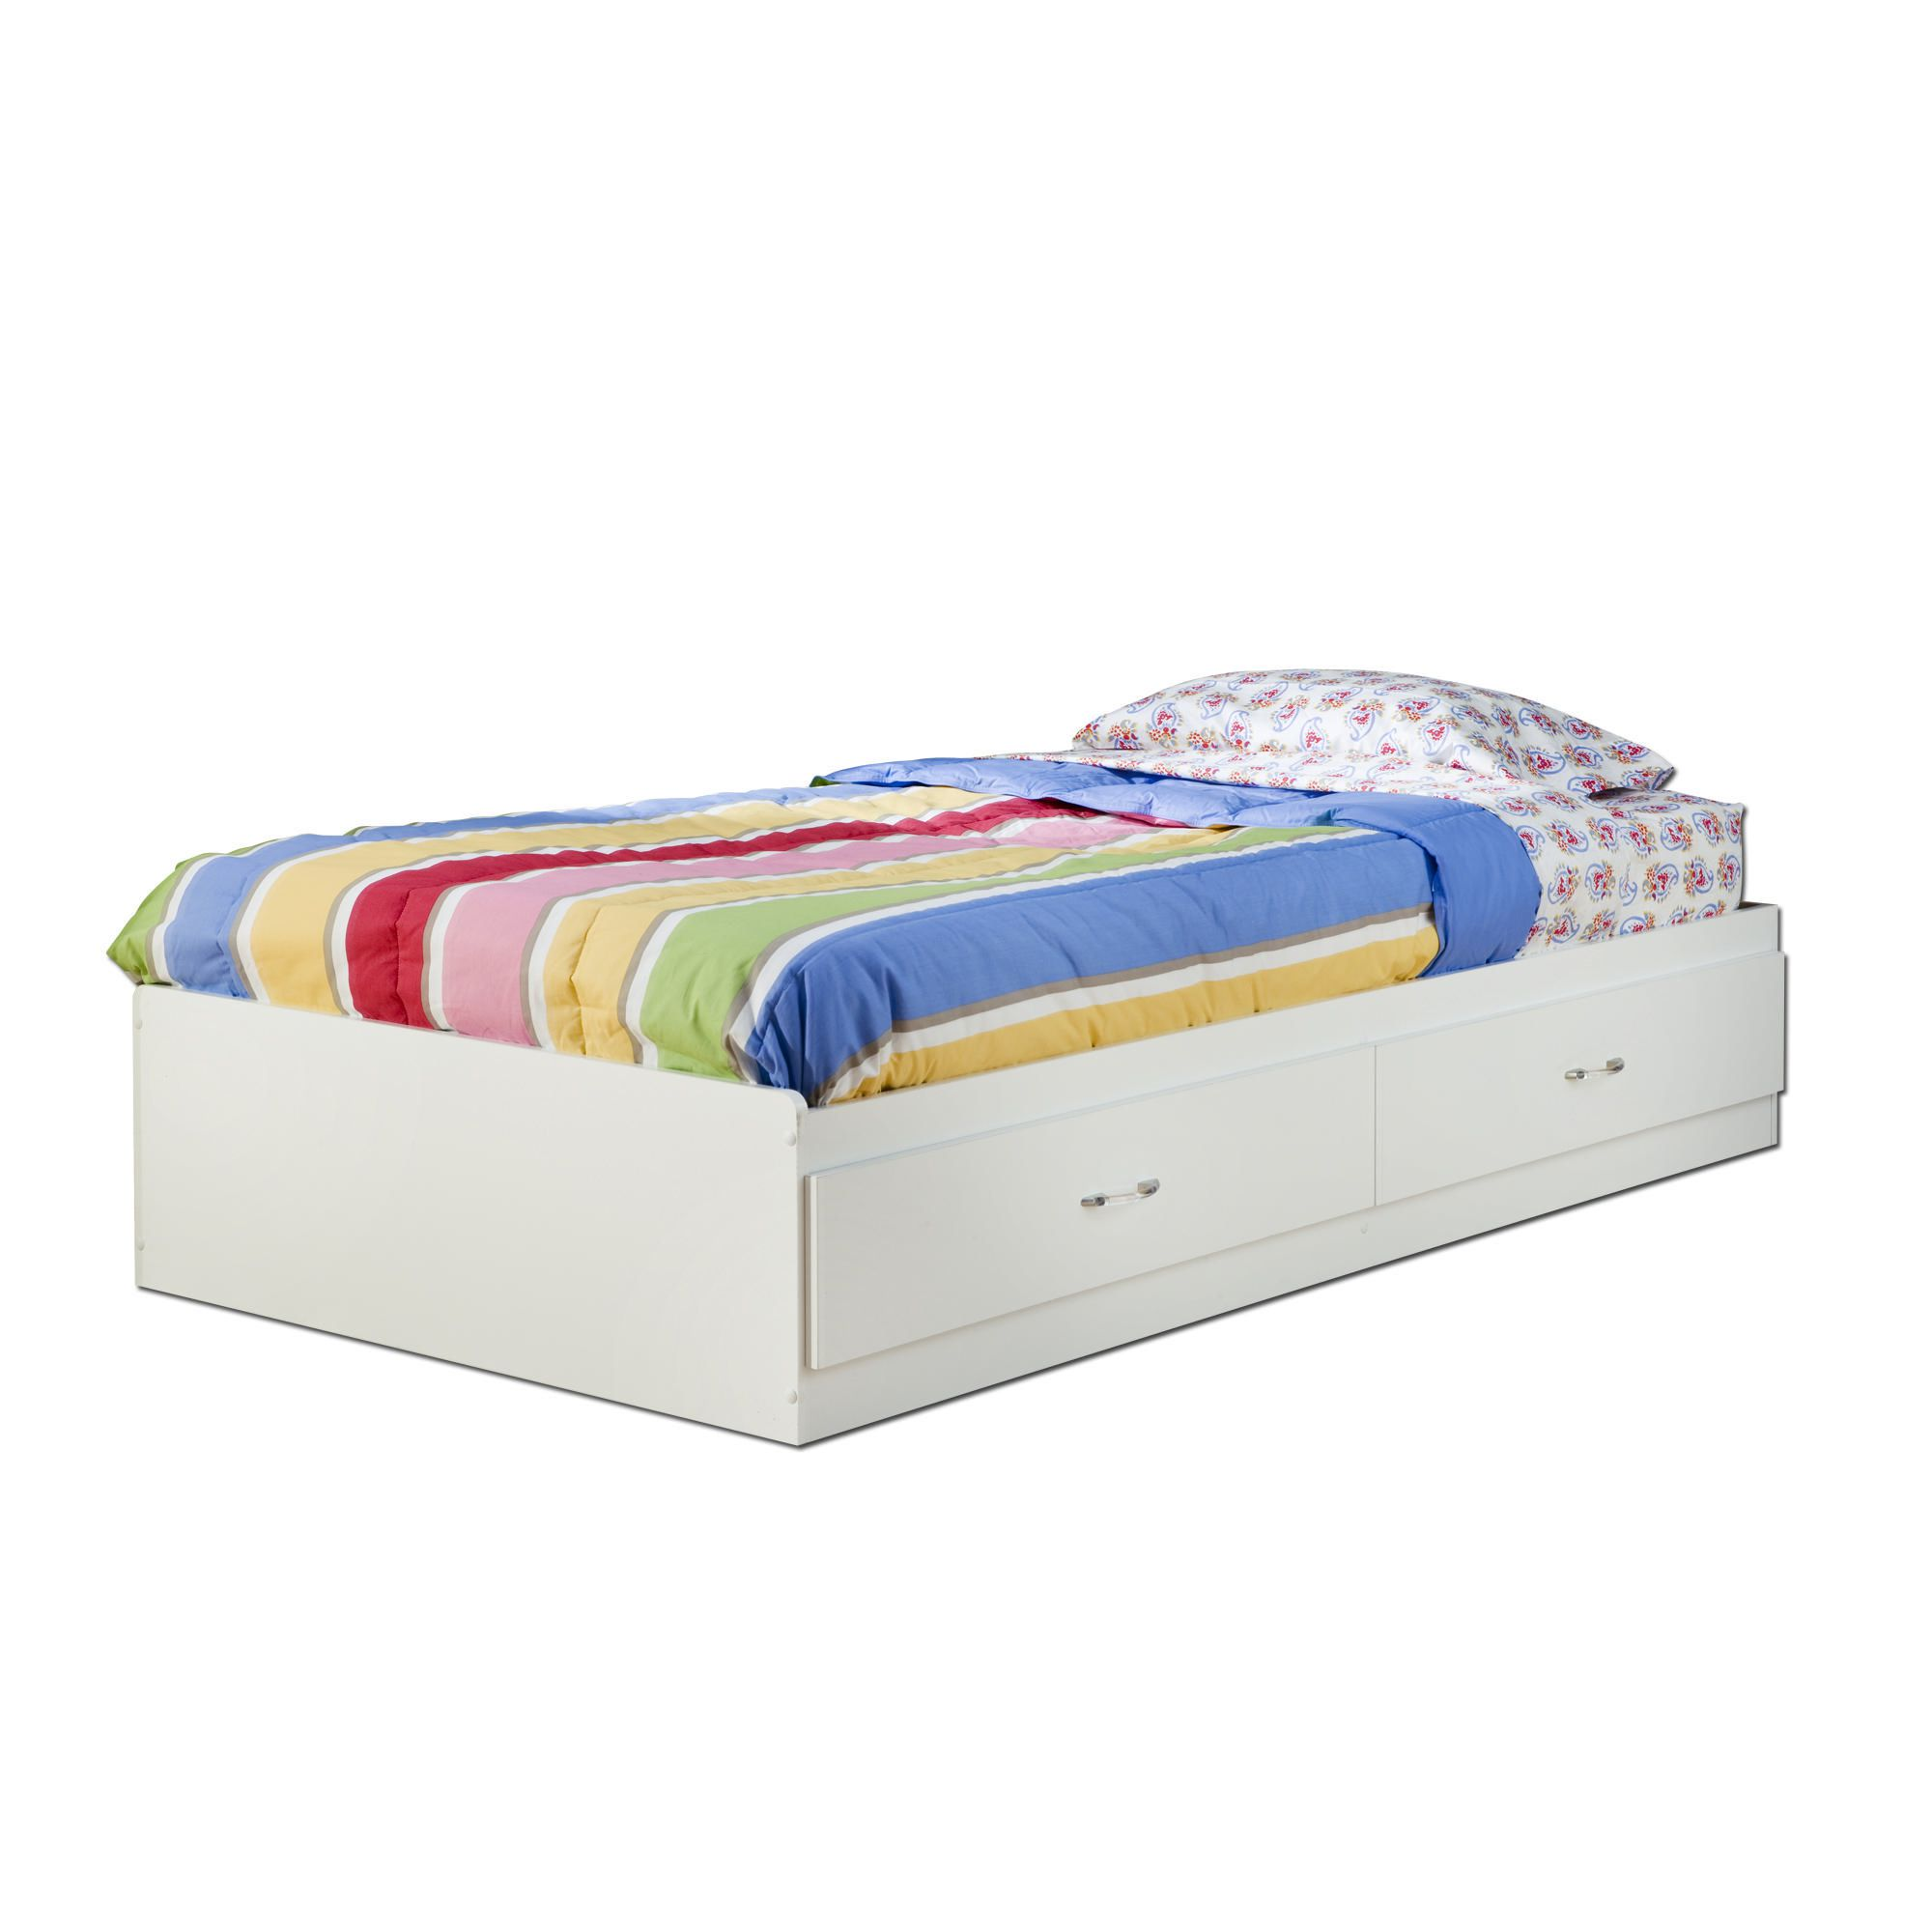 White twin bed with drawers - South Shore Logik Twin Mates Bed With Drawers Walmartca